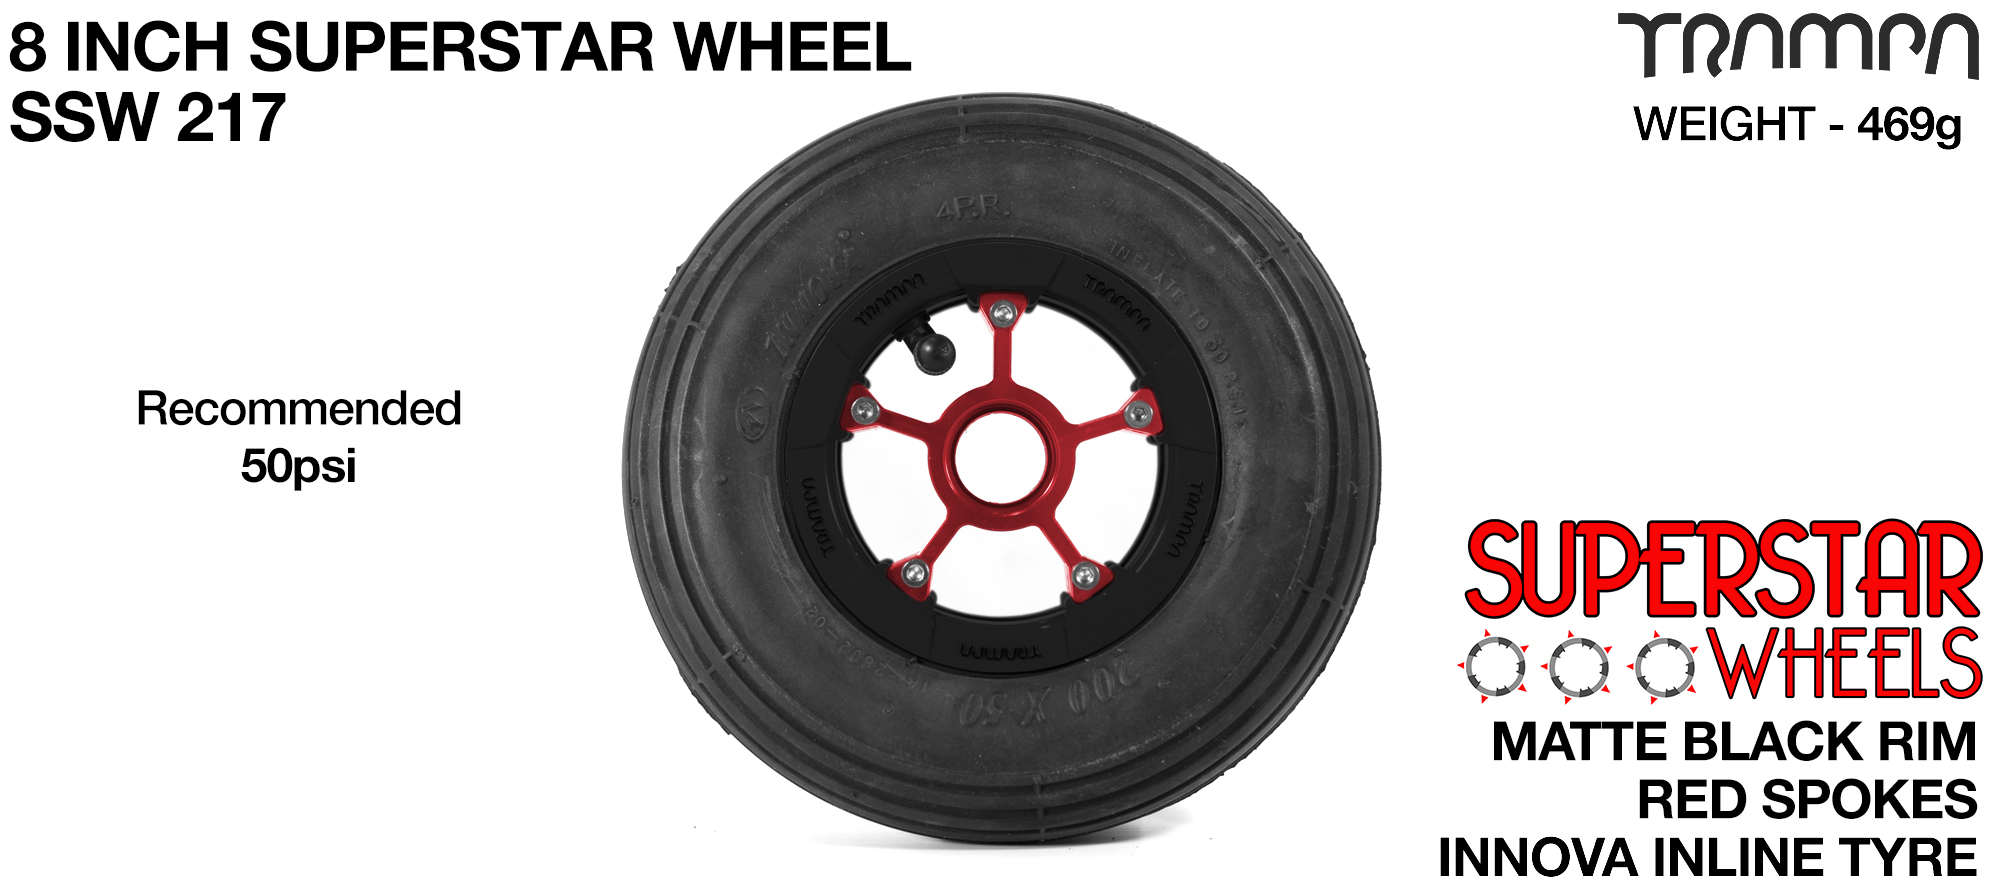 Superstar 8 Inch Wheel - Matt Black Superstar Rim Red Anodised Spokes & Black 8 Inch Inline Tyre